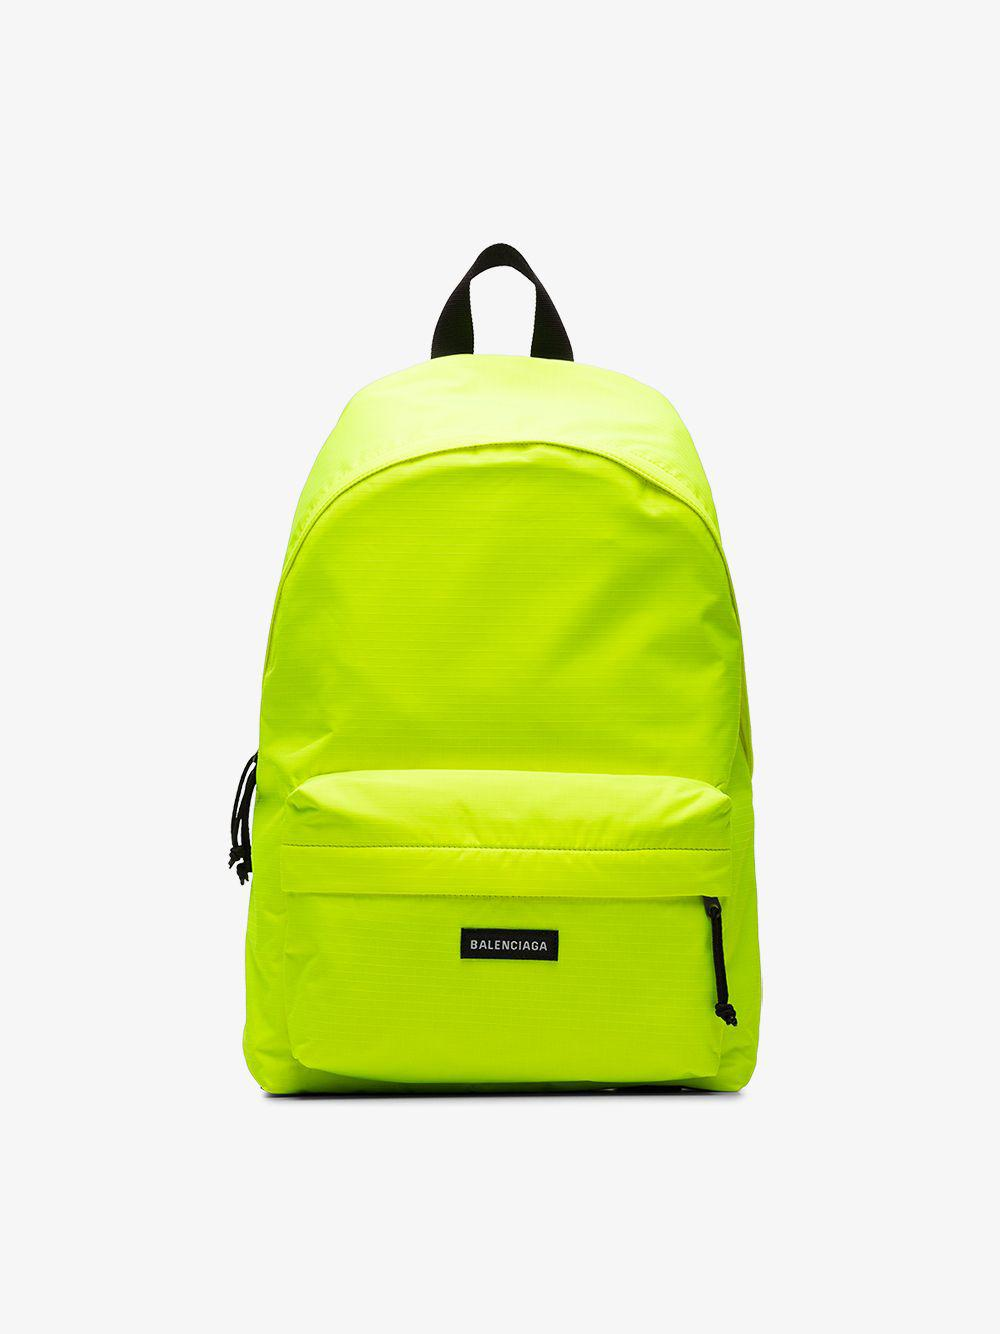 2bc0509e8596 Balenciaga Yellow Neon Explorer Logo Backpack in Yellow for Men - Save  8.695652173913047% - Lyst